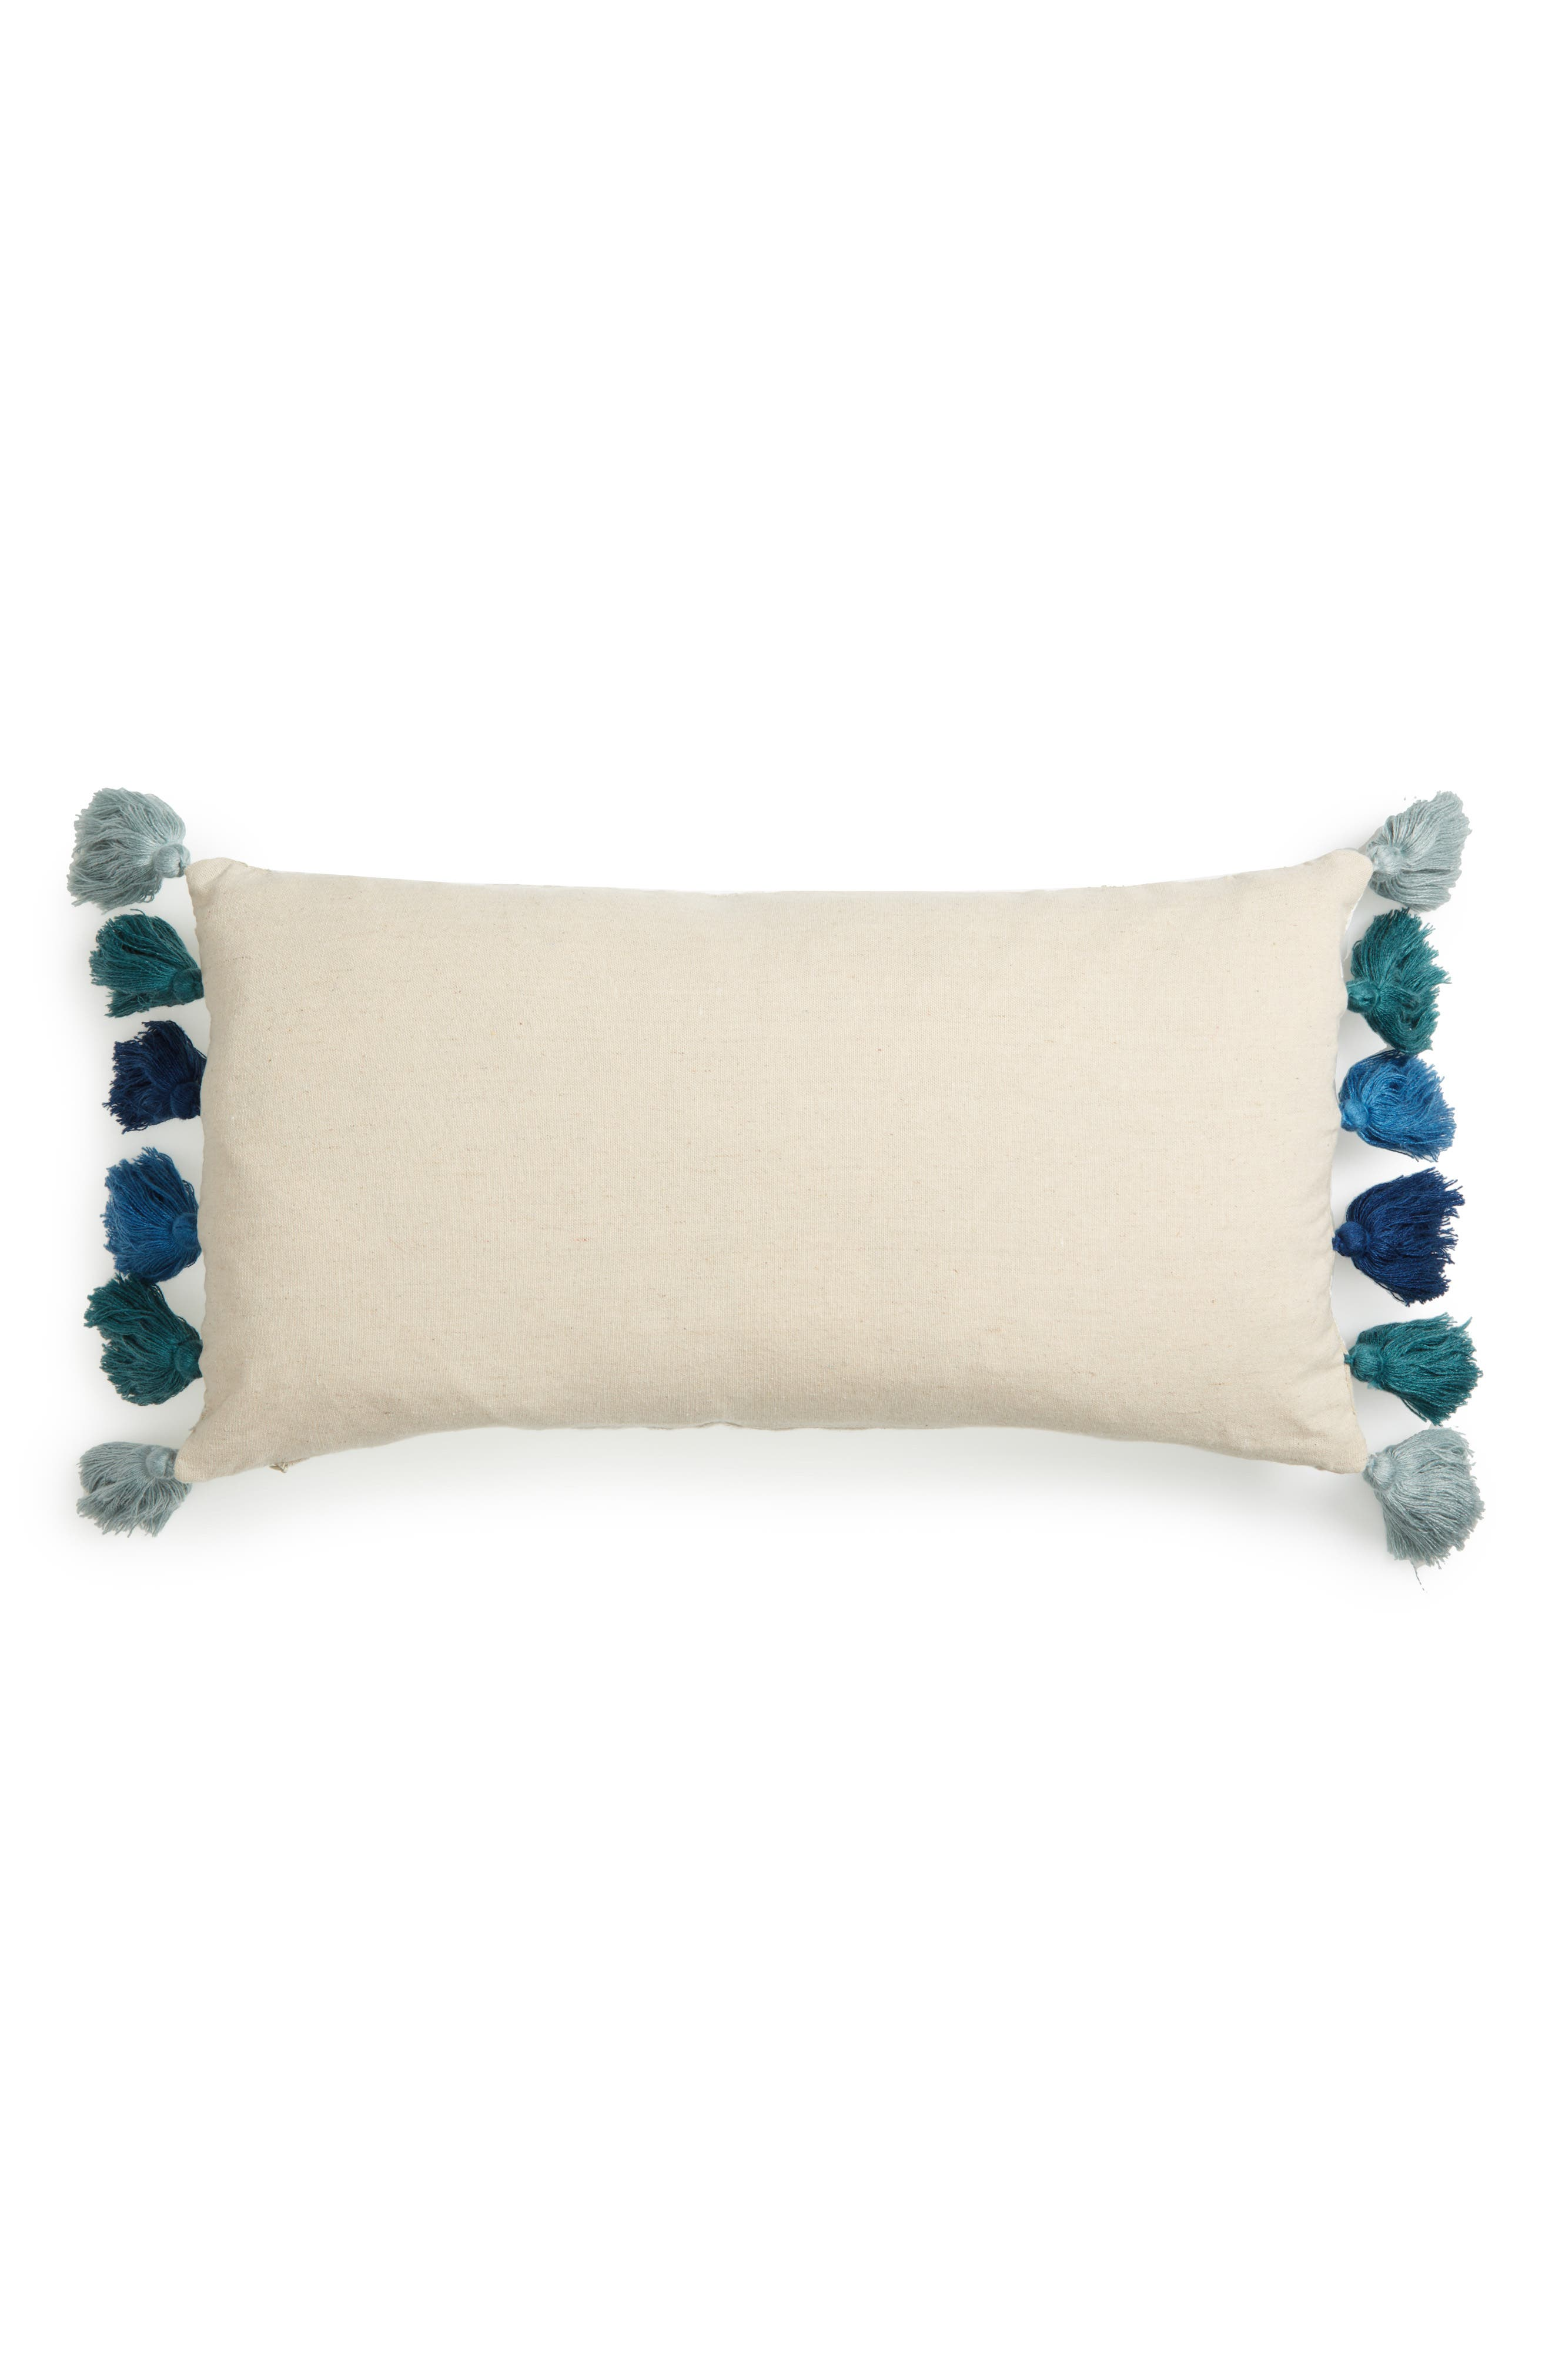 Beckett Embroidered Pillow,                             Alternate thumbnail 2, color,                             250